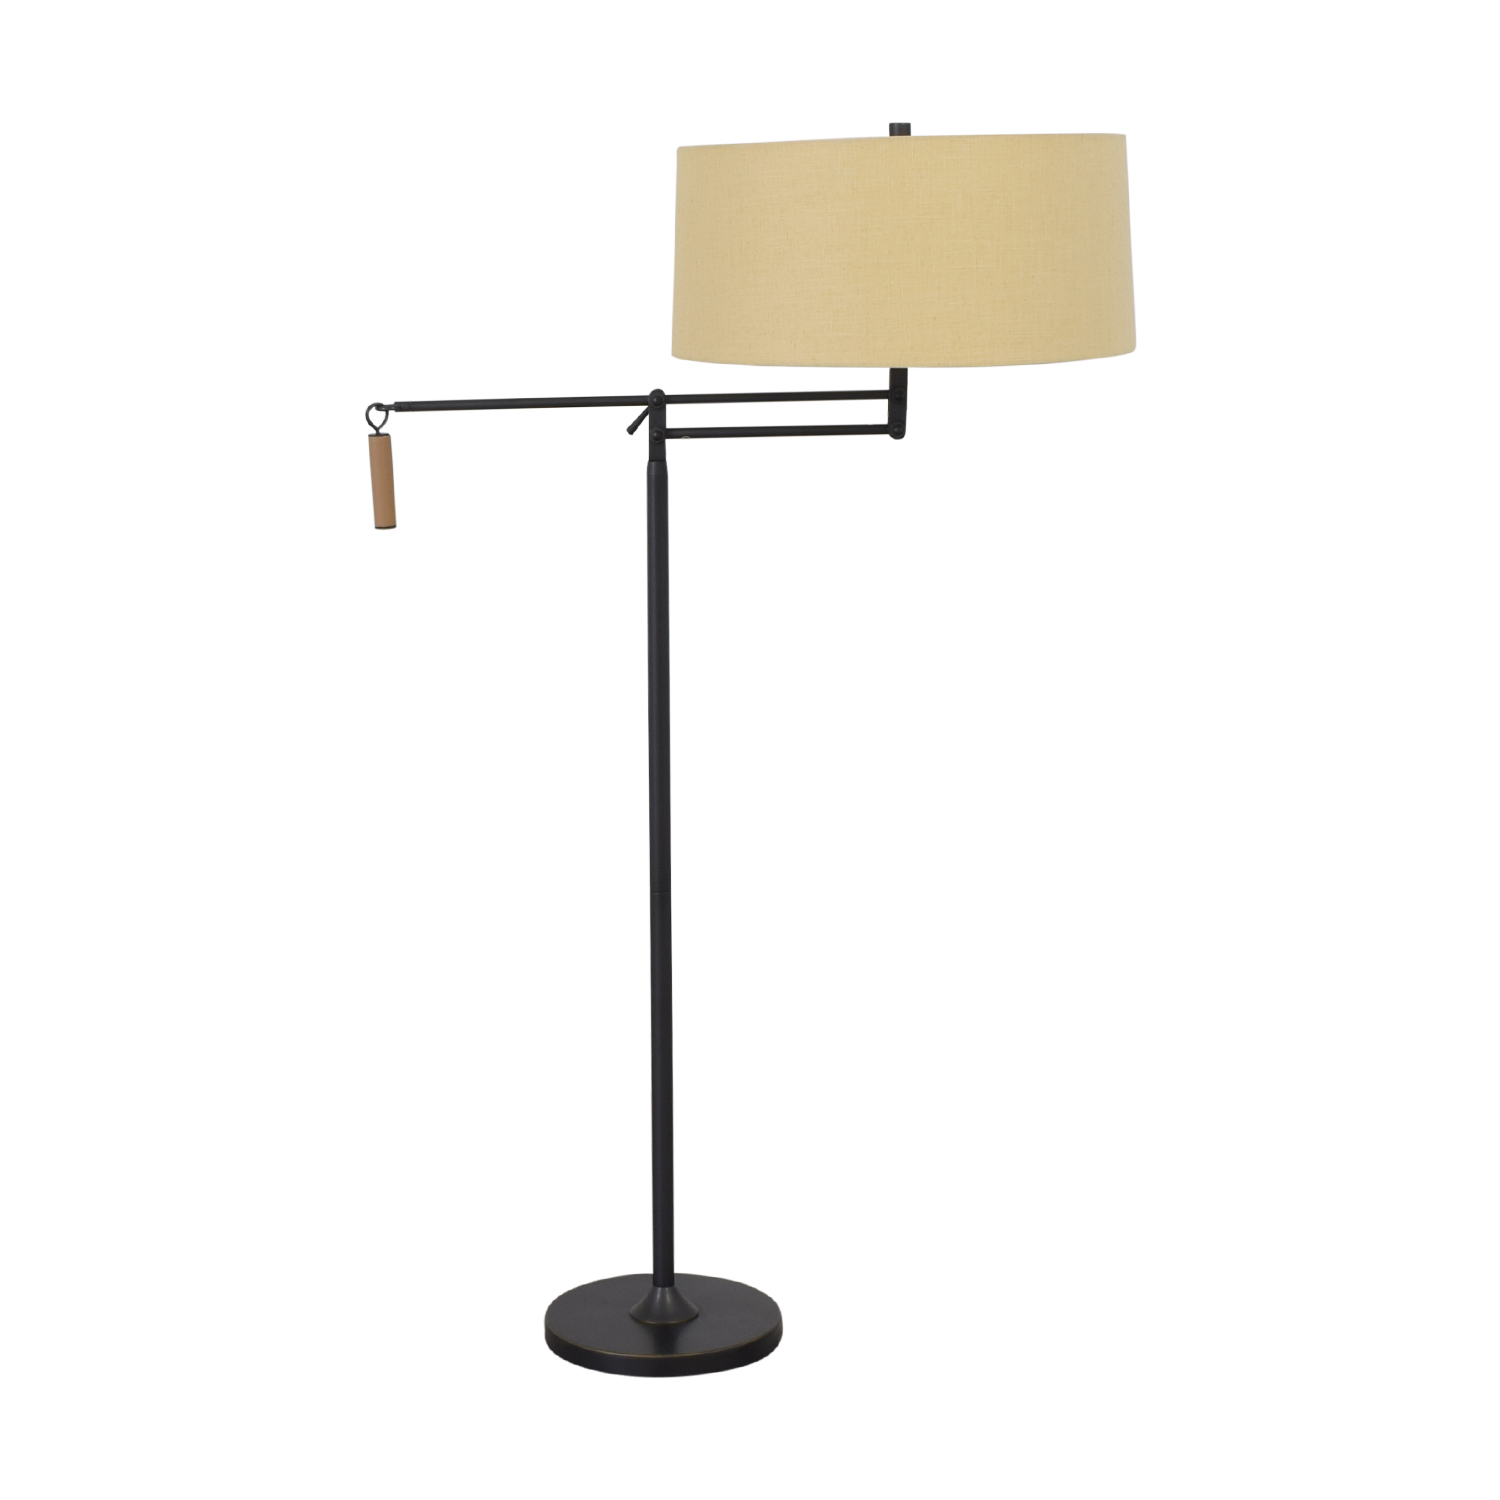 buy Crate & Barrel Autry Adjustable Floor Lamp Crate & Barrel Decor